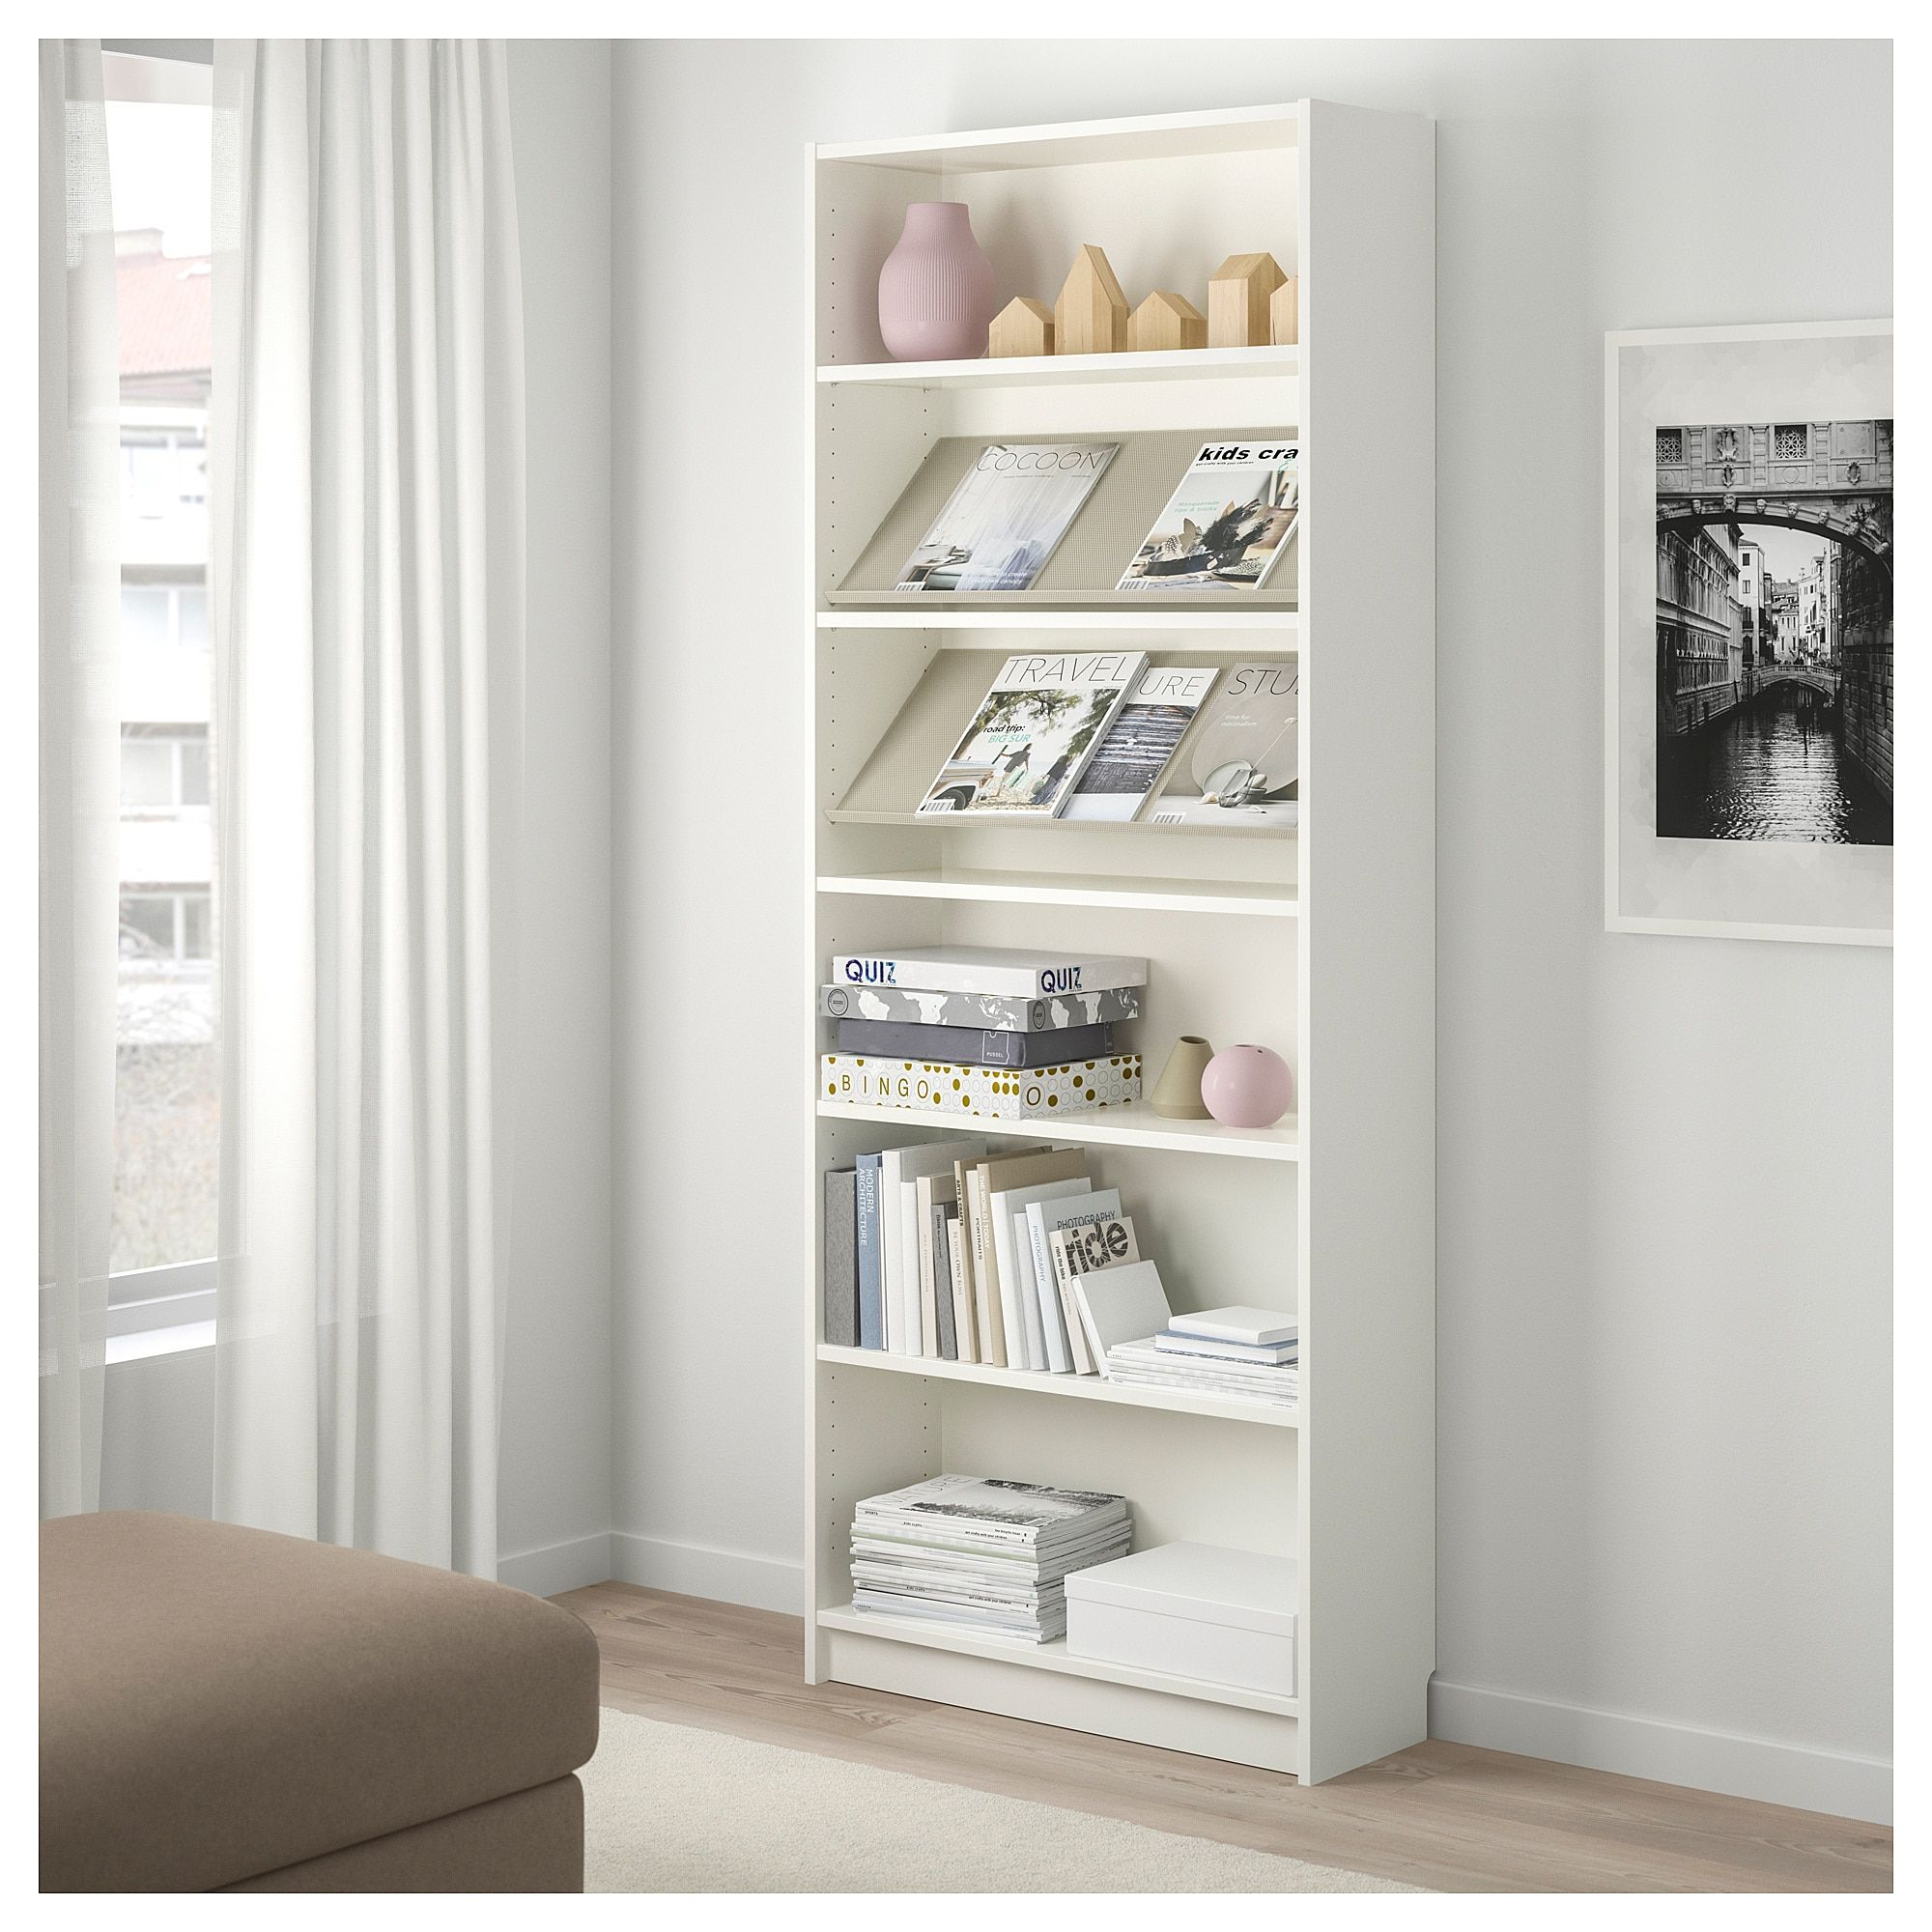 Marvelous Ikea Billy Bottna Bookcase With Display Shelf White Download Free Architecture Designs Intelgarnamadebymaigaardcom